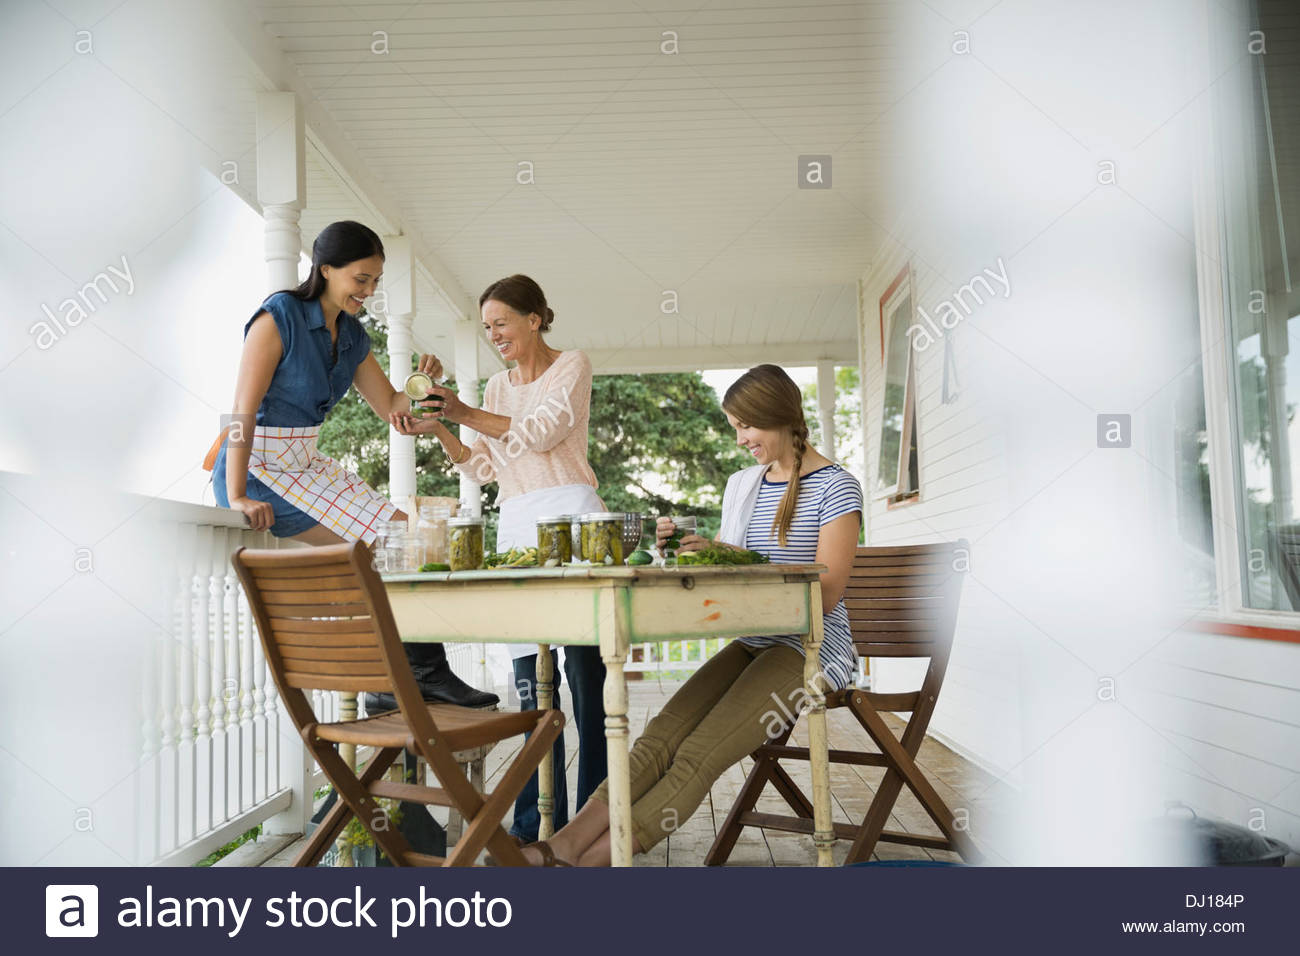 Mother and daughters canning vegetables on porch - Stock Image